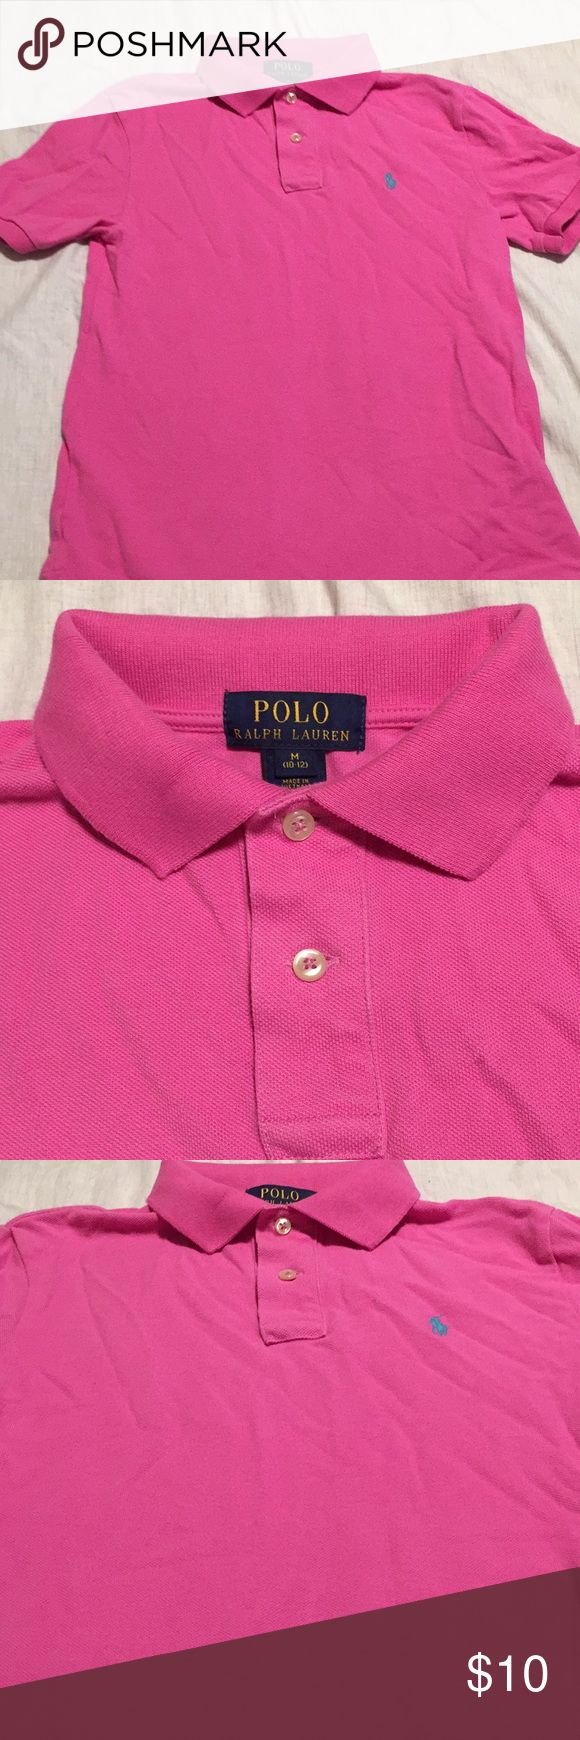 Polo by Ralph Lauren Pink Polo shirt Excellent condition Pink Ralph Lauren Polo size Medium 10-12 Boys Polo by Ralph Lauren Shirts & Tops Polos